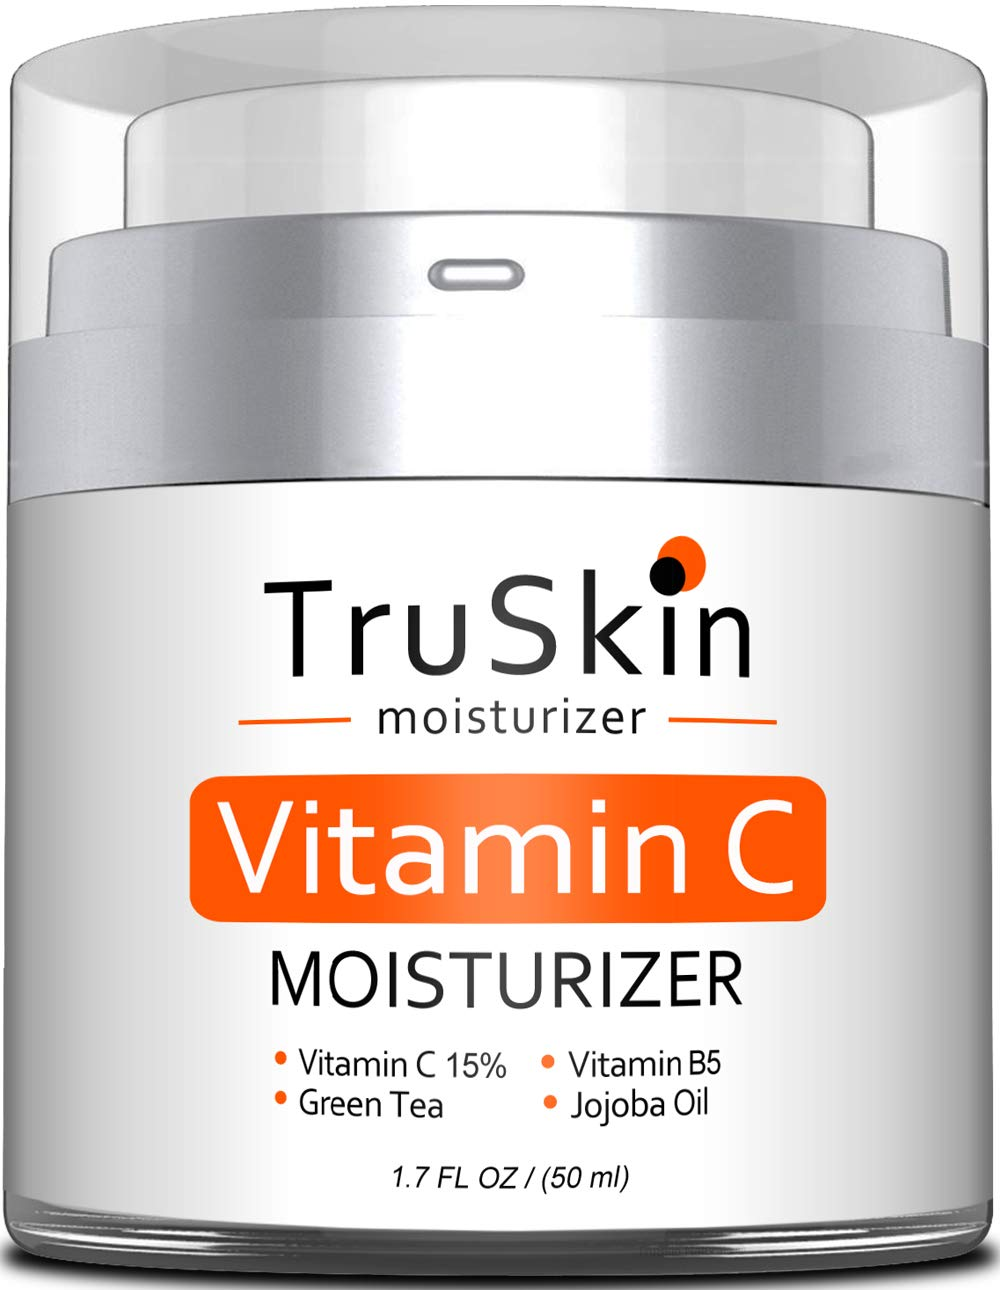 BEST Vitamin C Moisturizer Cream for Face, Neck & Décolleté for Anti-Aging, Wrinkles, Age Spots, Skin Tone, Firming, and Dark Circles. 1.7 Fl. Oz by TruSkin Naturals